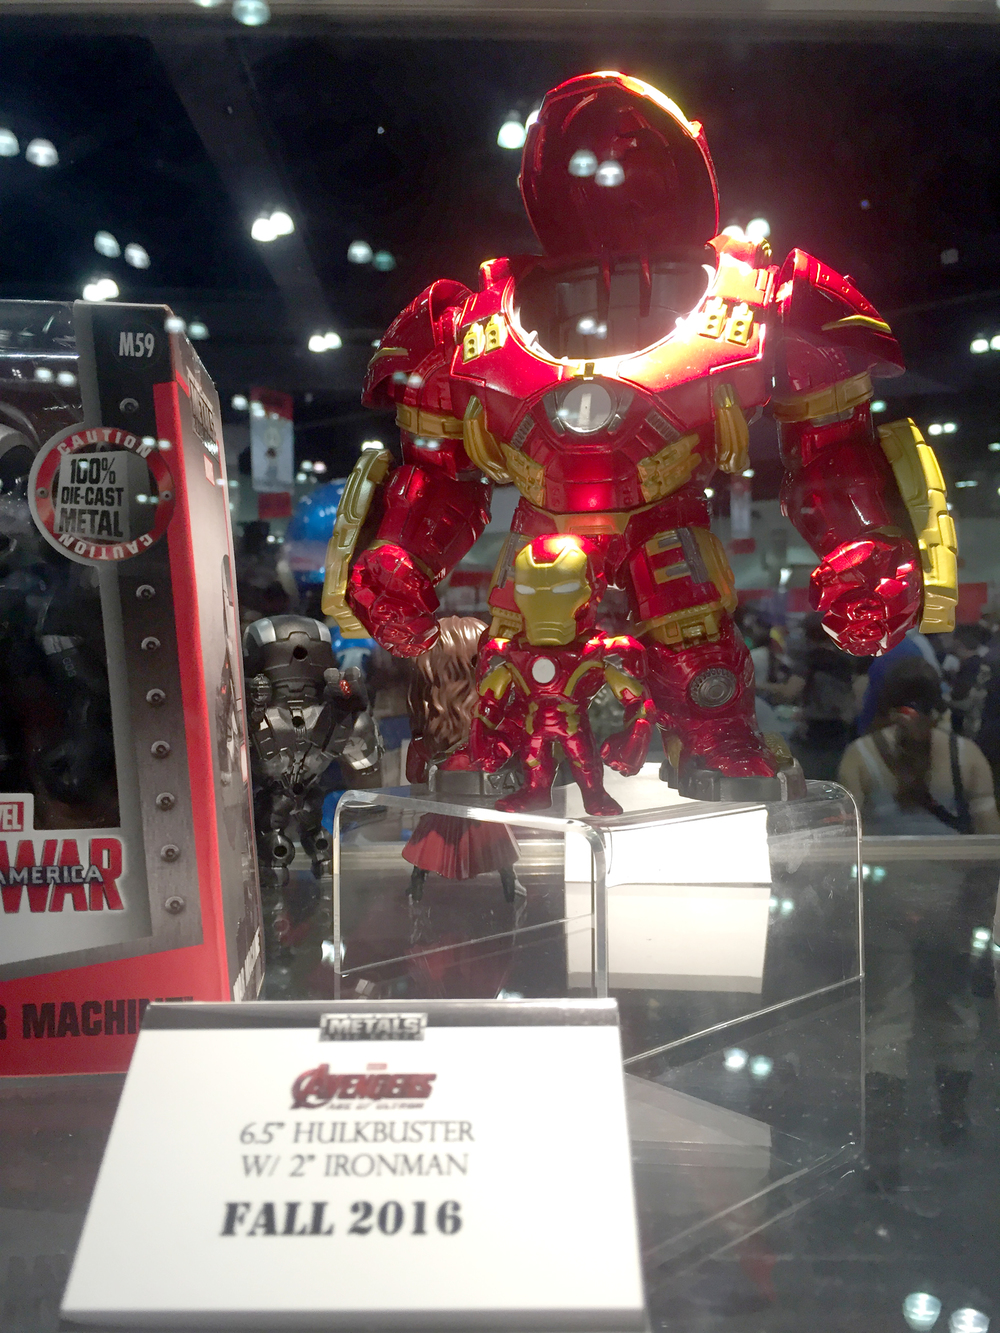 That Hulkbuster though…